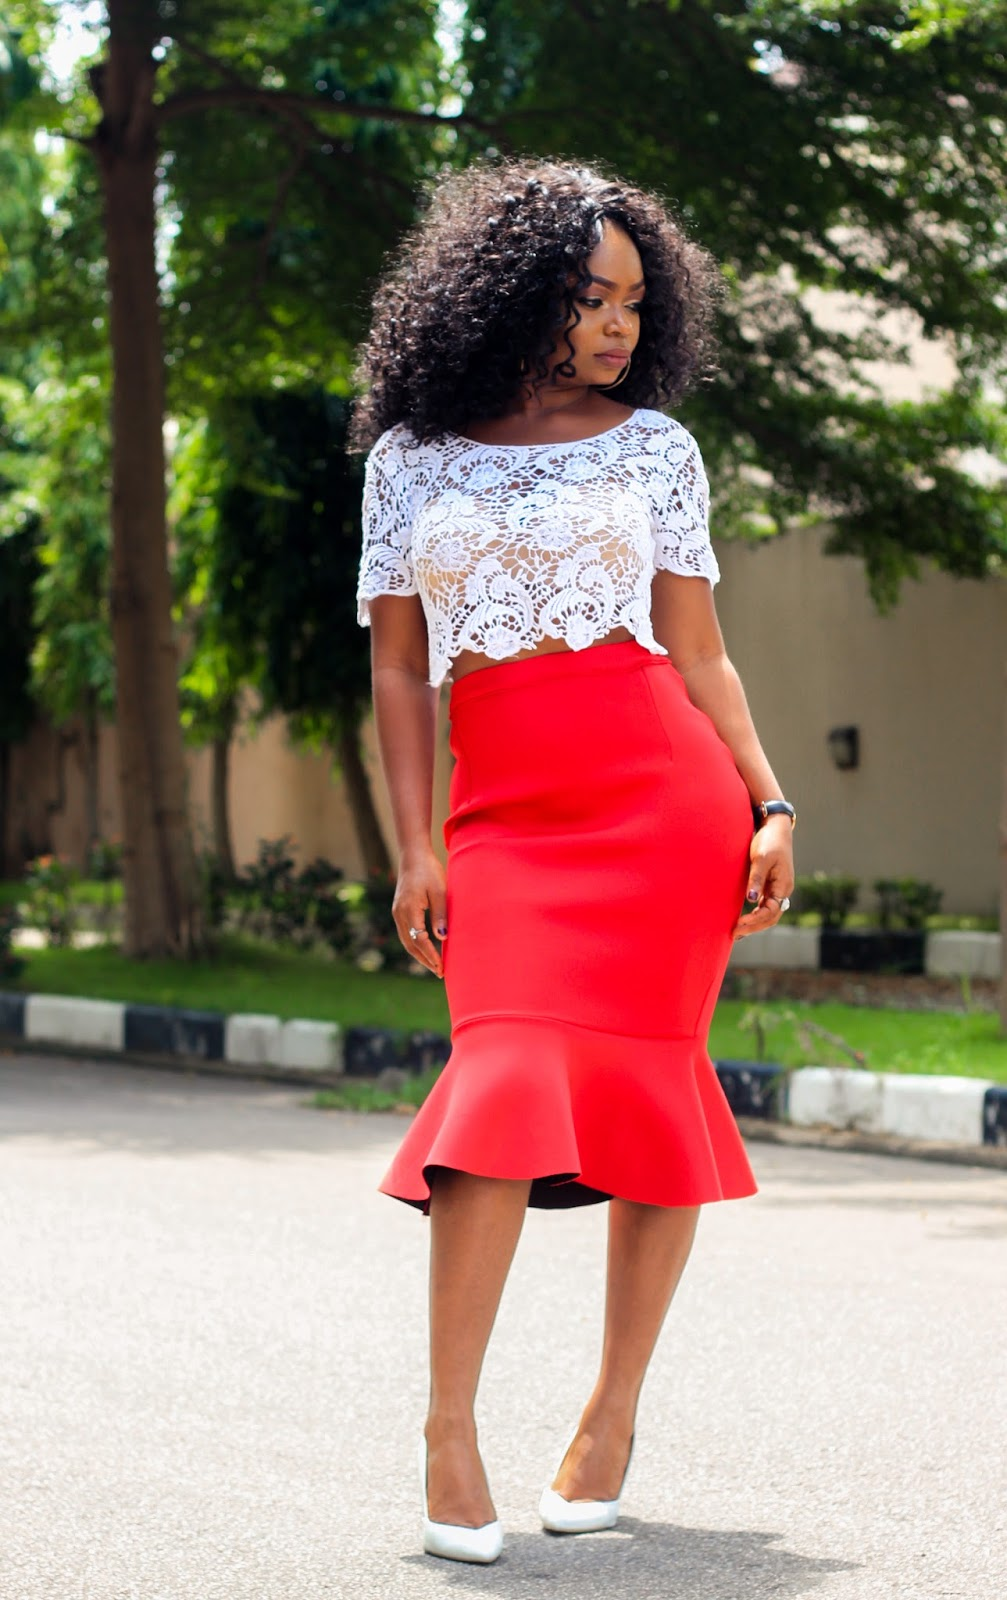 PEPLUM HEM SKIRT - Styling Red Peplum Hem Skirt from Choies and White Lace Crop Top